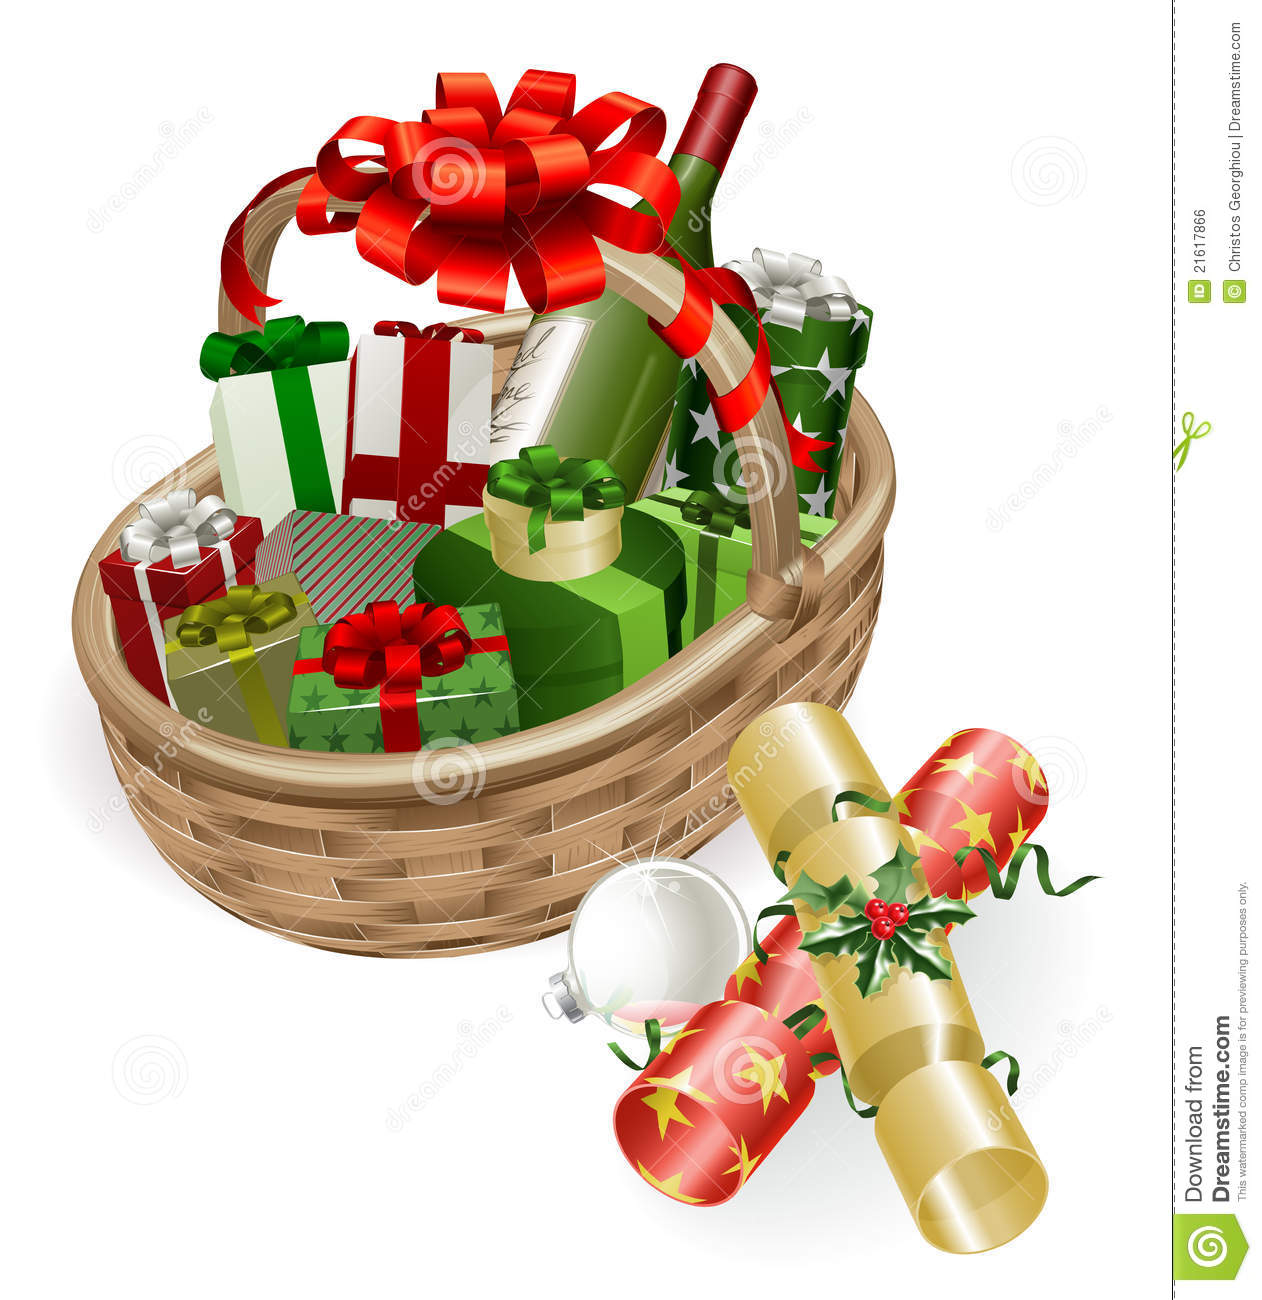 Hamper cartoon clipart suggest